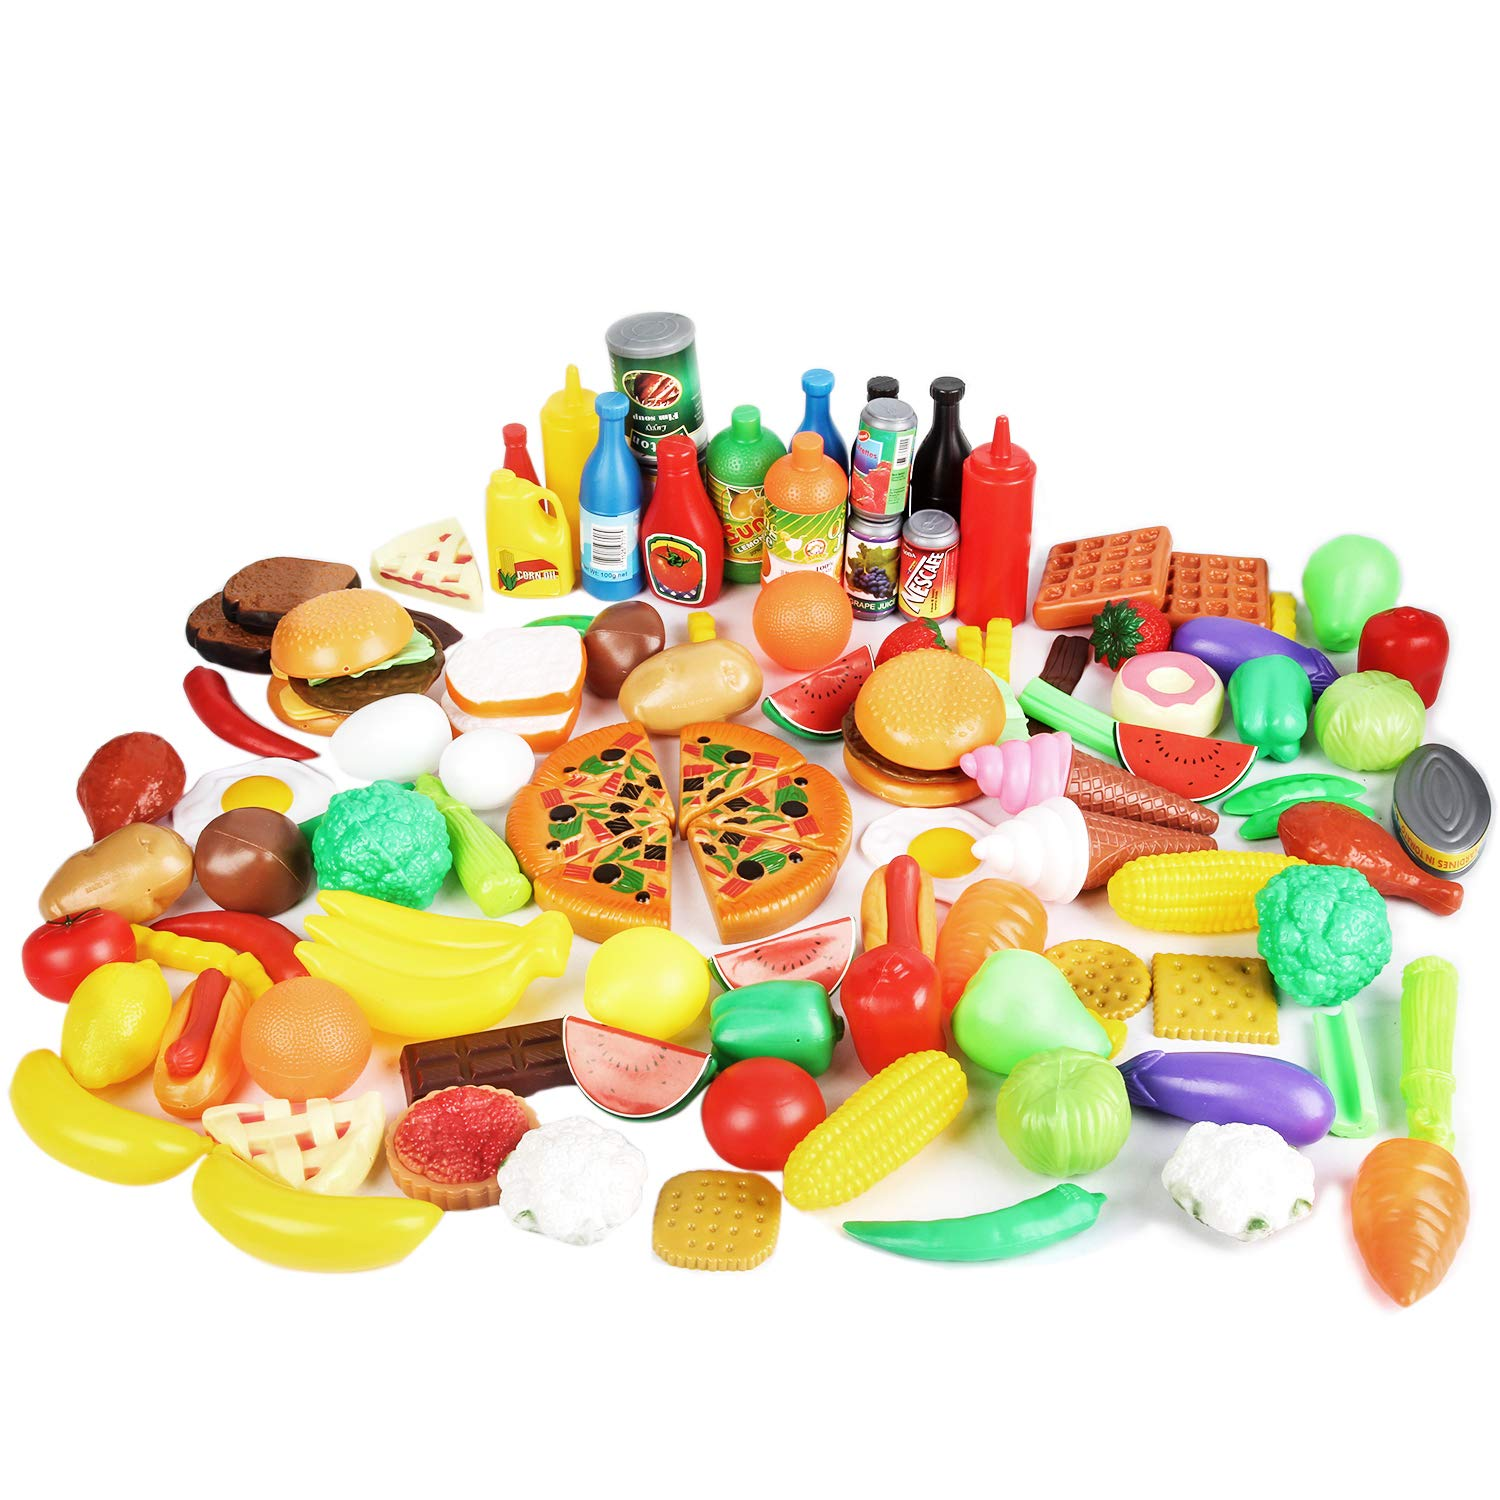 CatchStar Play Food Variety Pretend Food Durable Toy Food Set for Kids Toddler Play Kitchen Outdoor Picnic Foods Accessories Plastic Vegetable Toys Playset Portable Mesh Bag 120 Piece by CatchStar